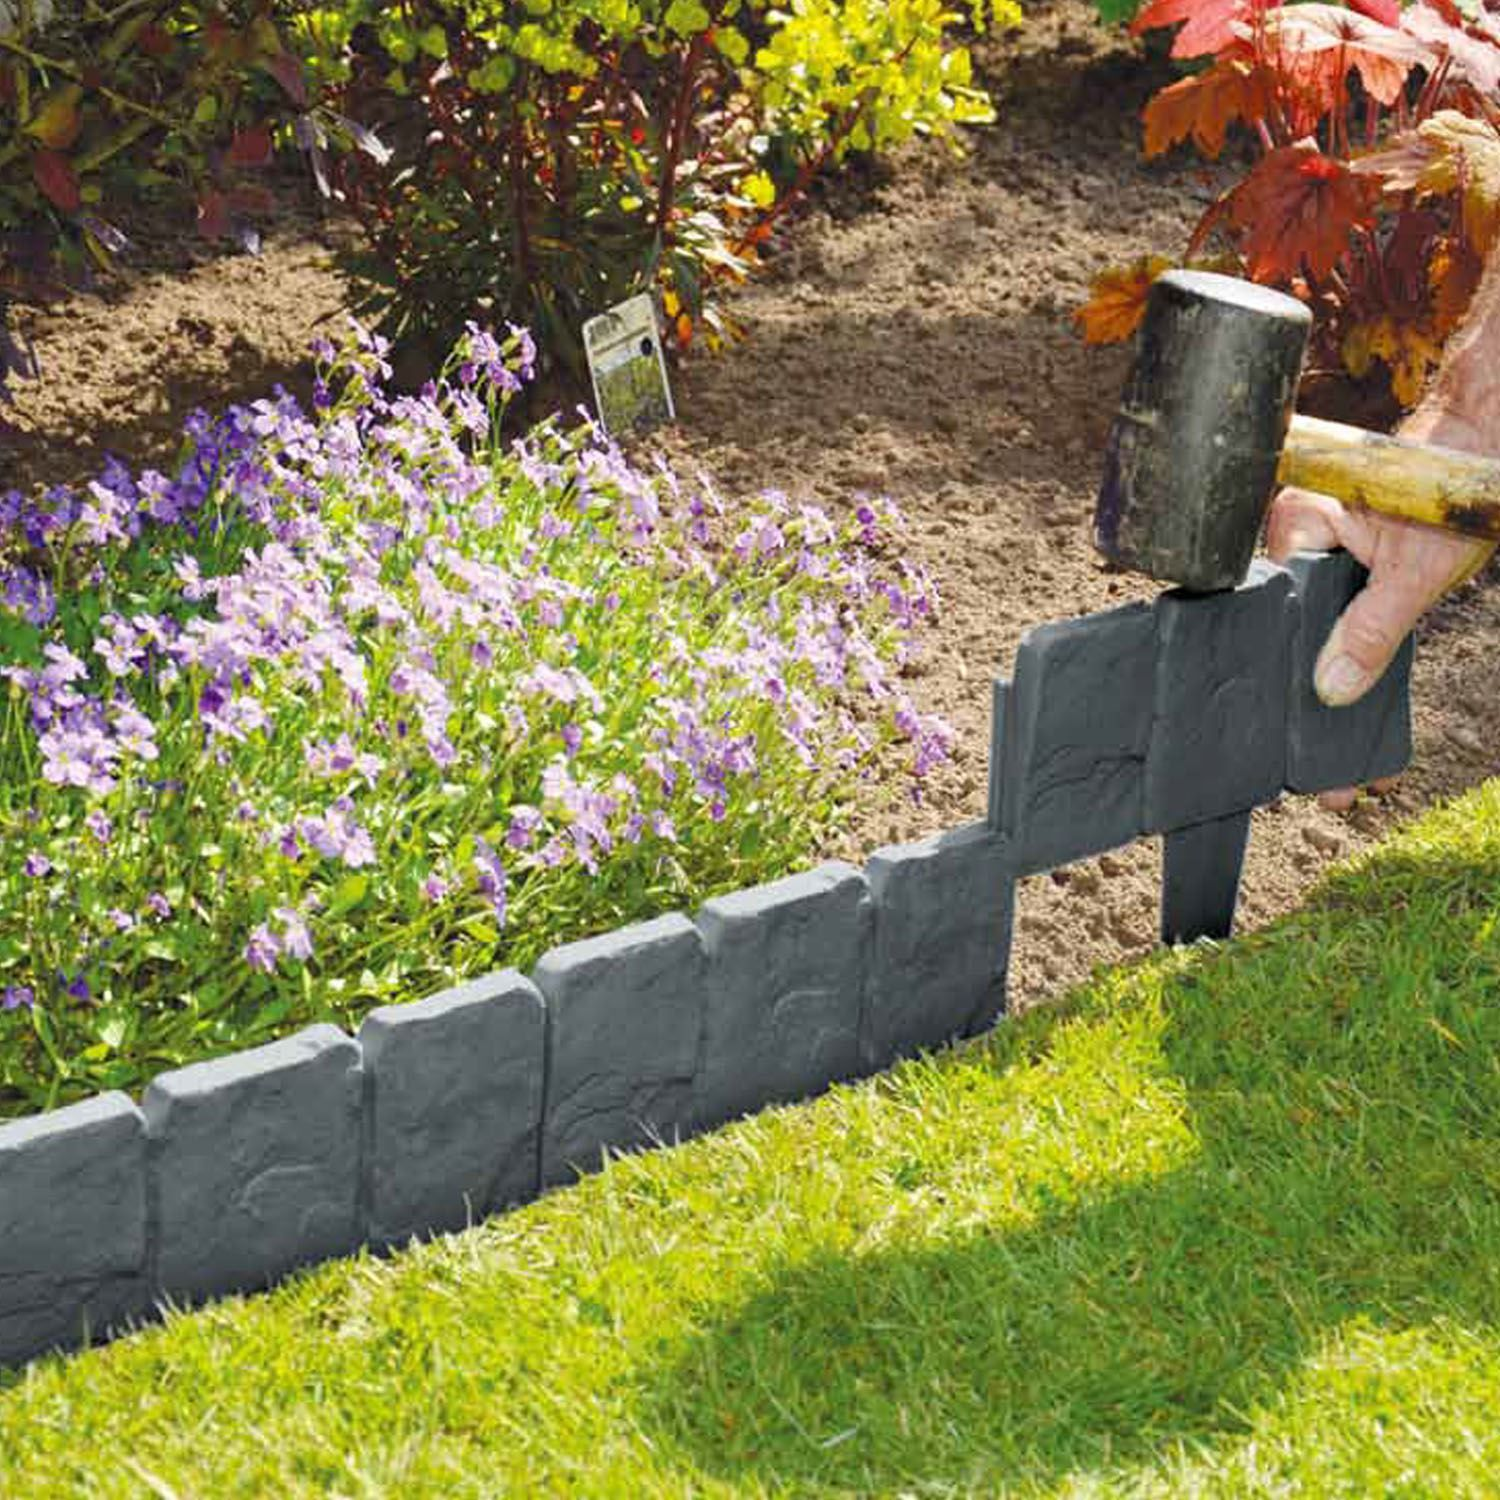 Pin by Lisa Conine on GardeningLandscaping Plastic